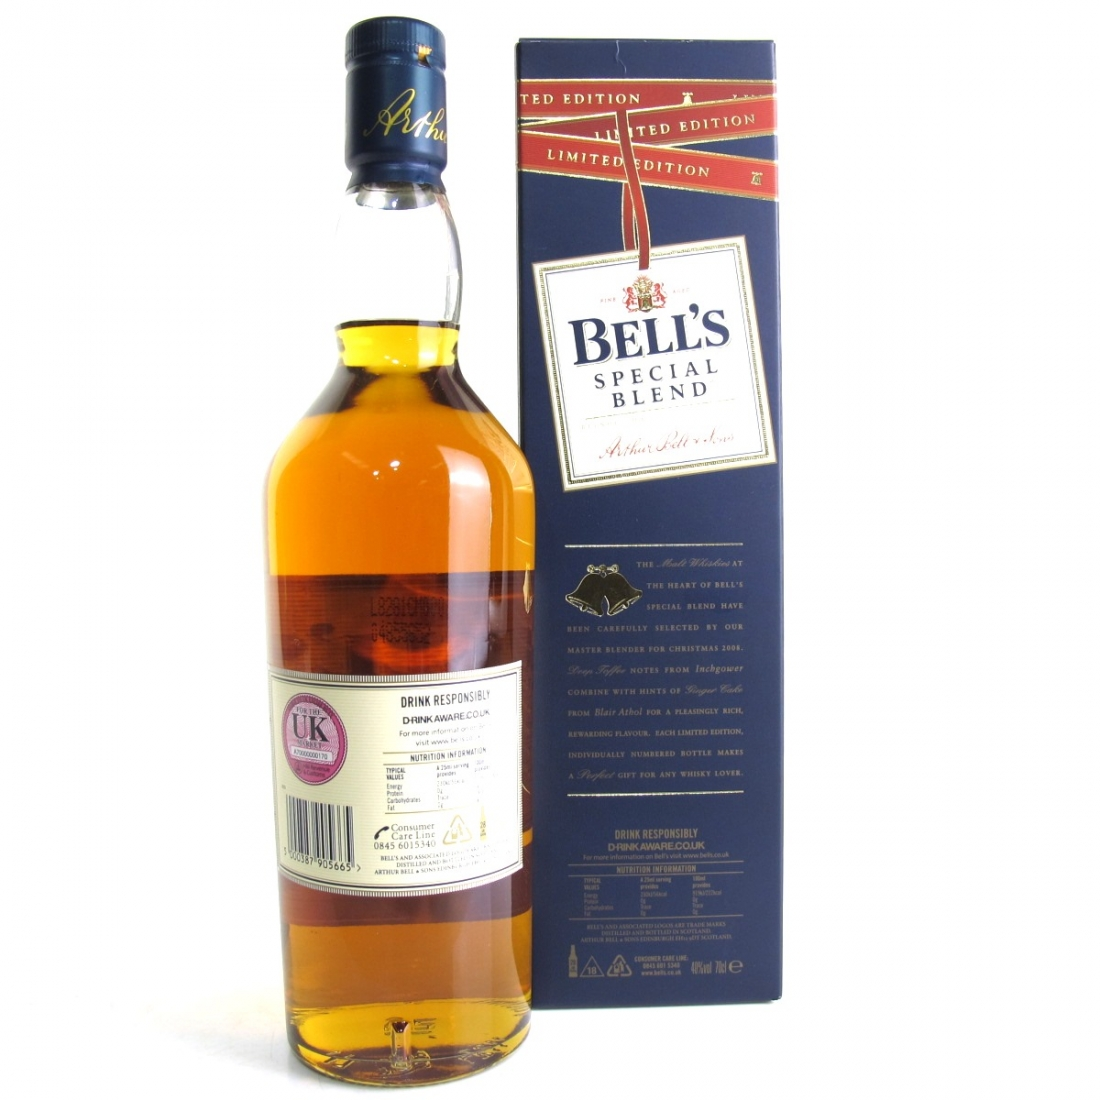 Bell's Pure Malt Christmas 2008 Limited Edition